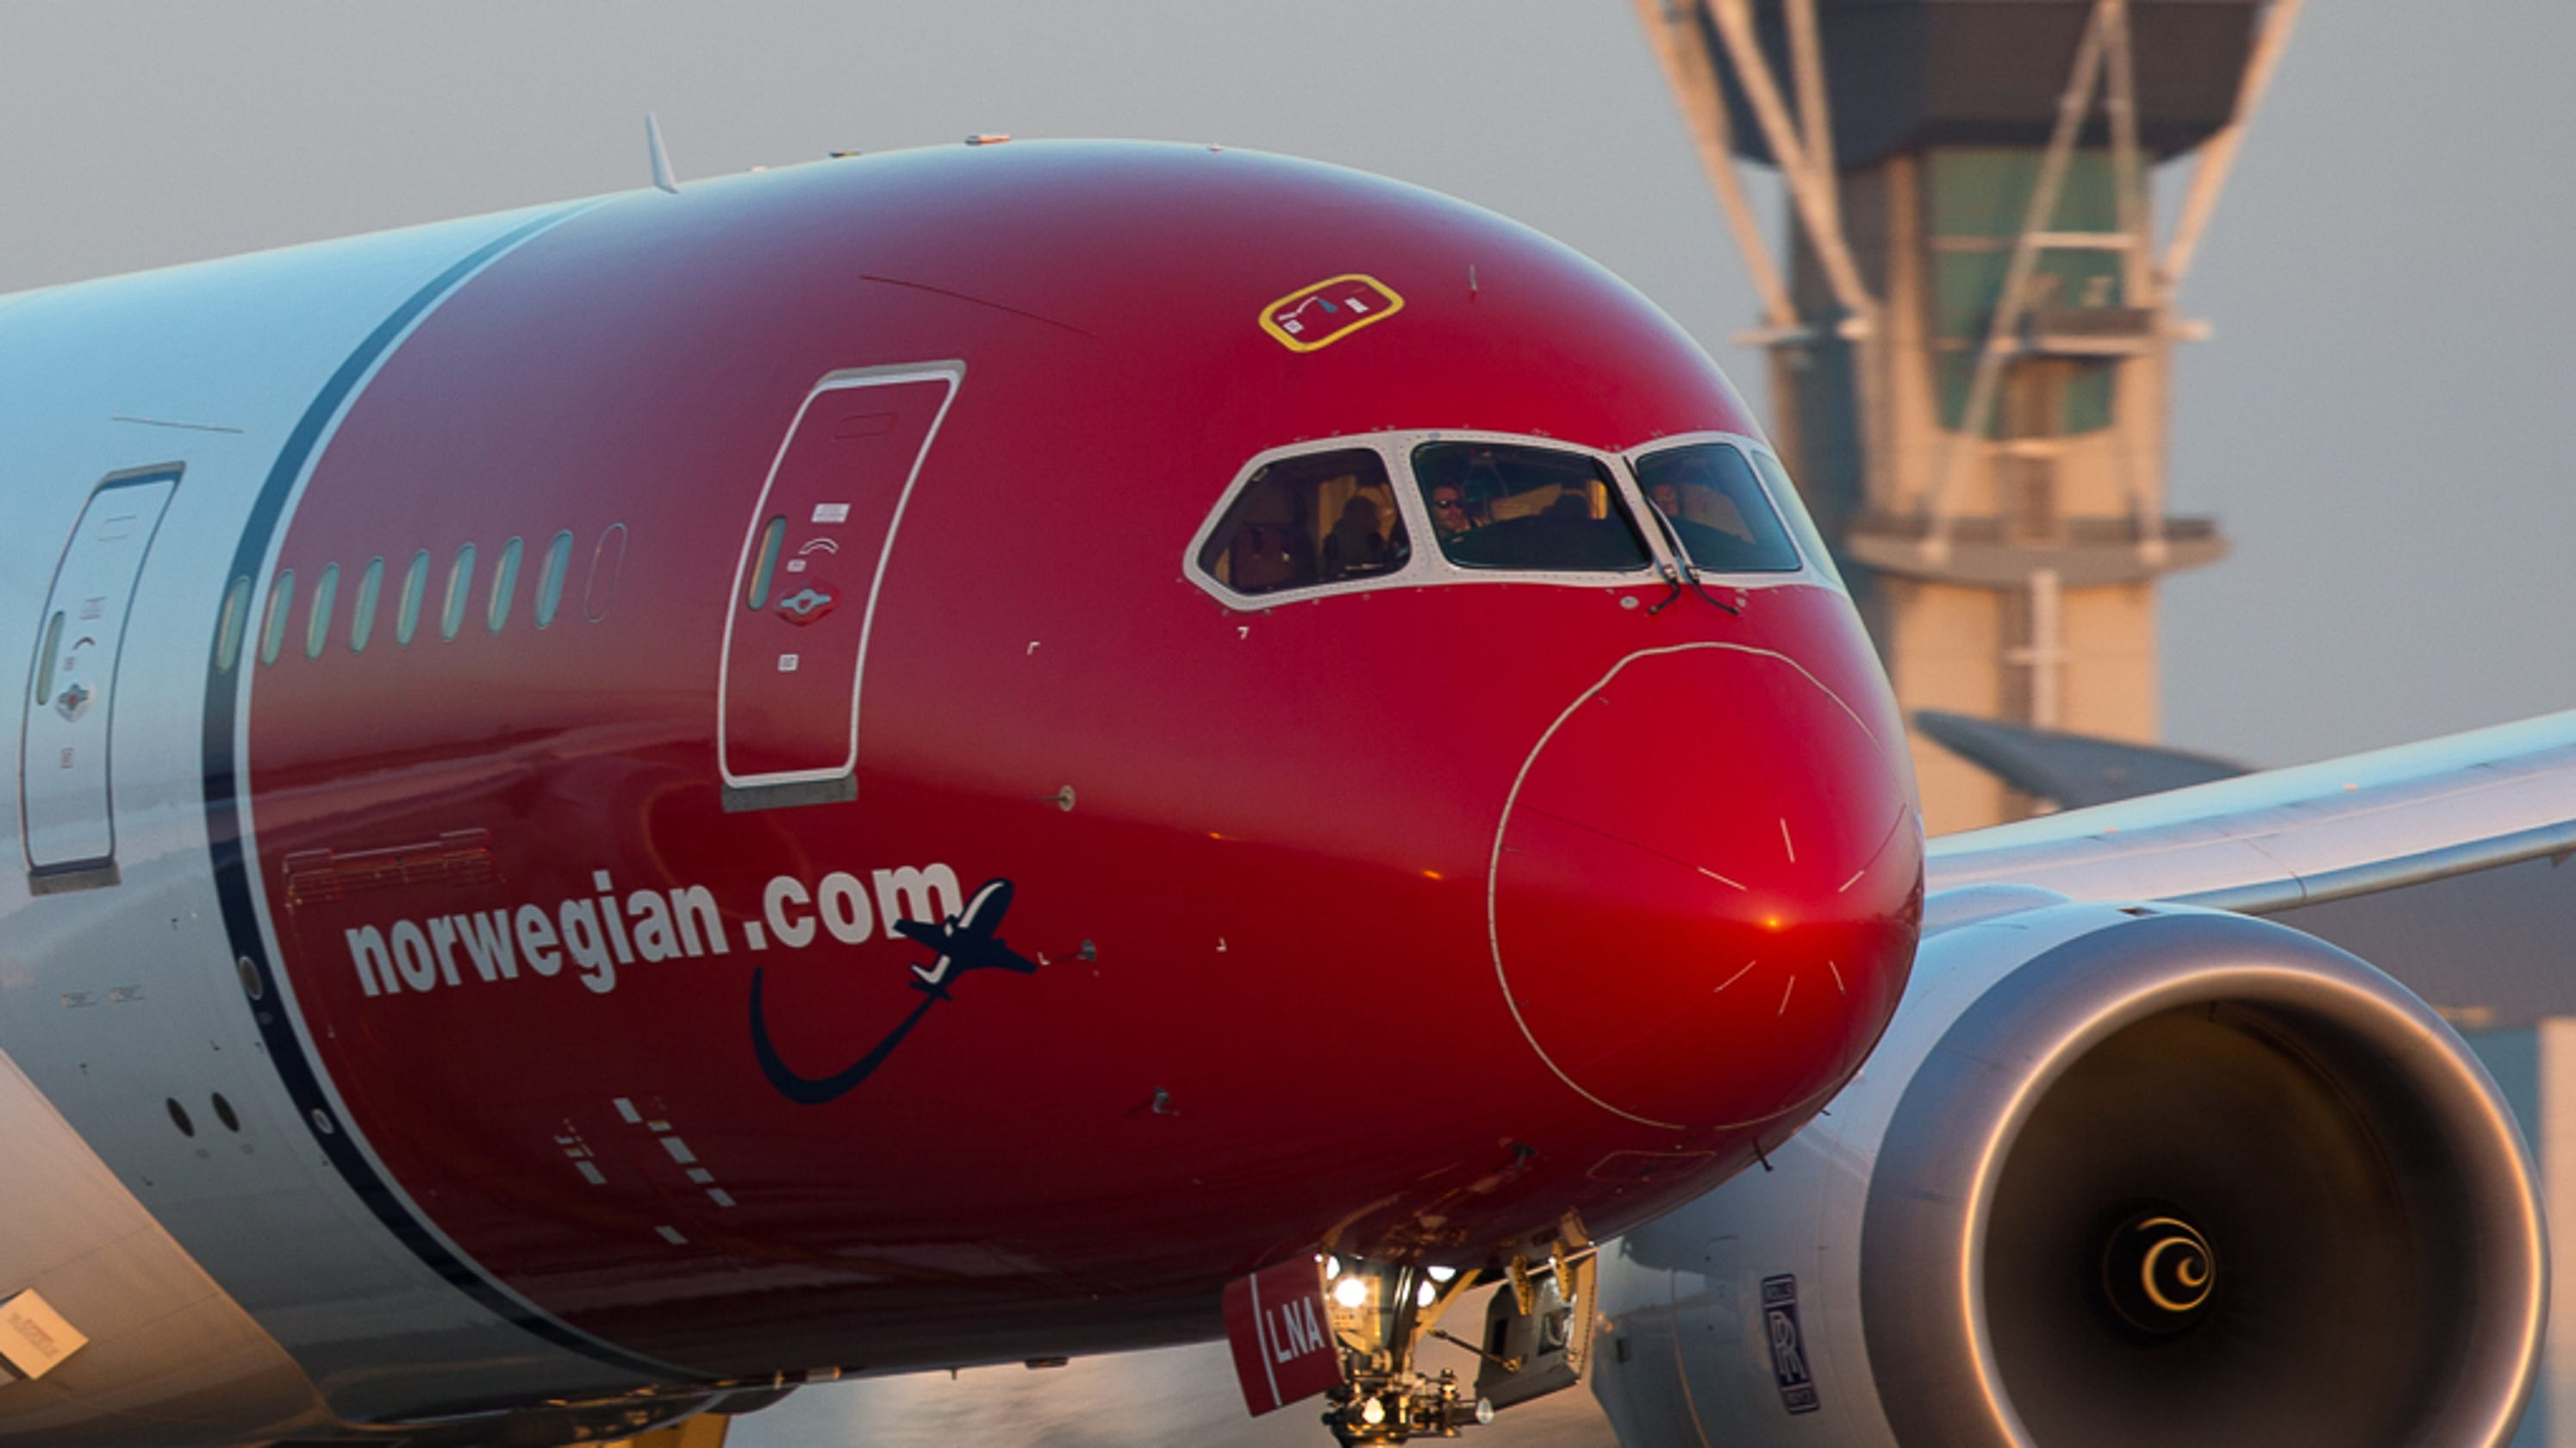 Norwegian Air\'s route map expands to Brazil with Rio de ...